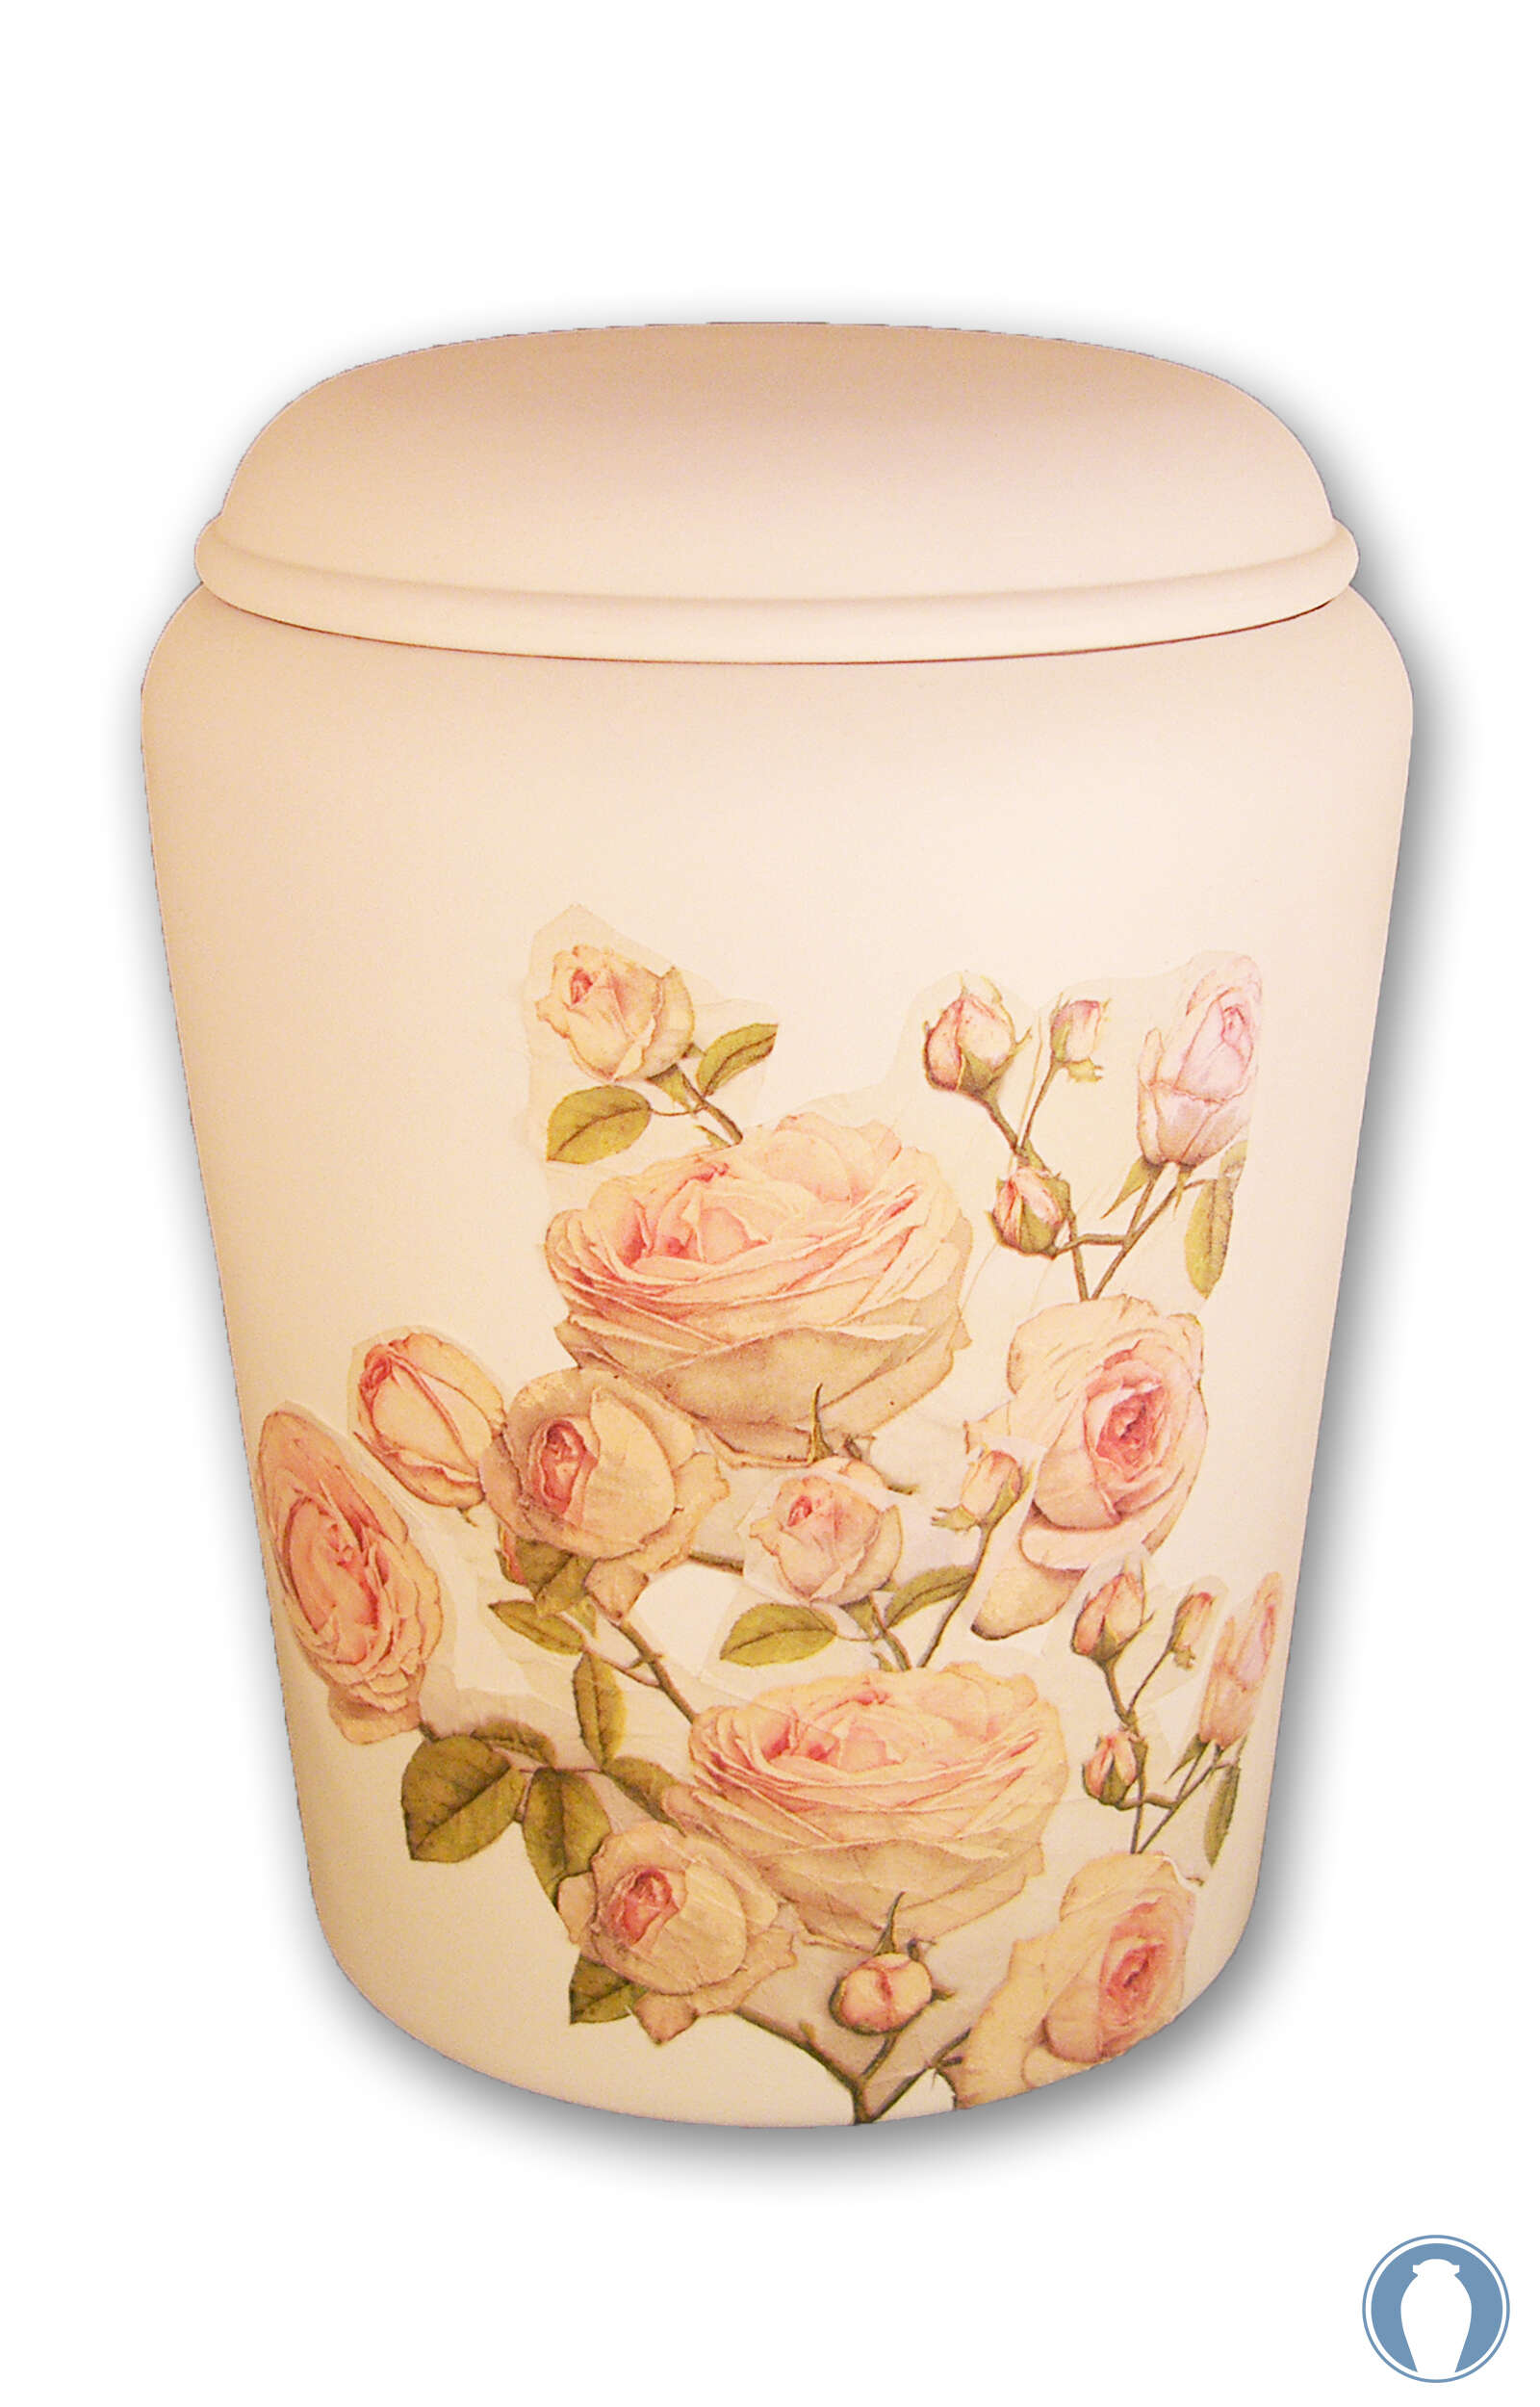 en BWR1729 Nona Mela biodigradable urn white rose funeral urn for human ashes